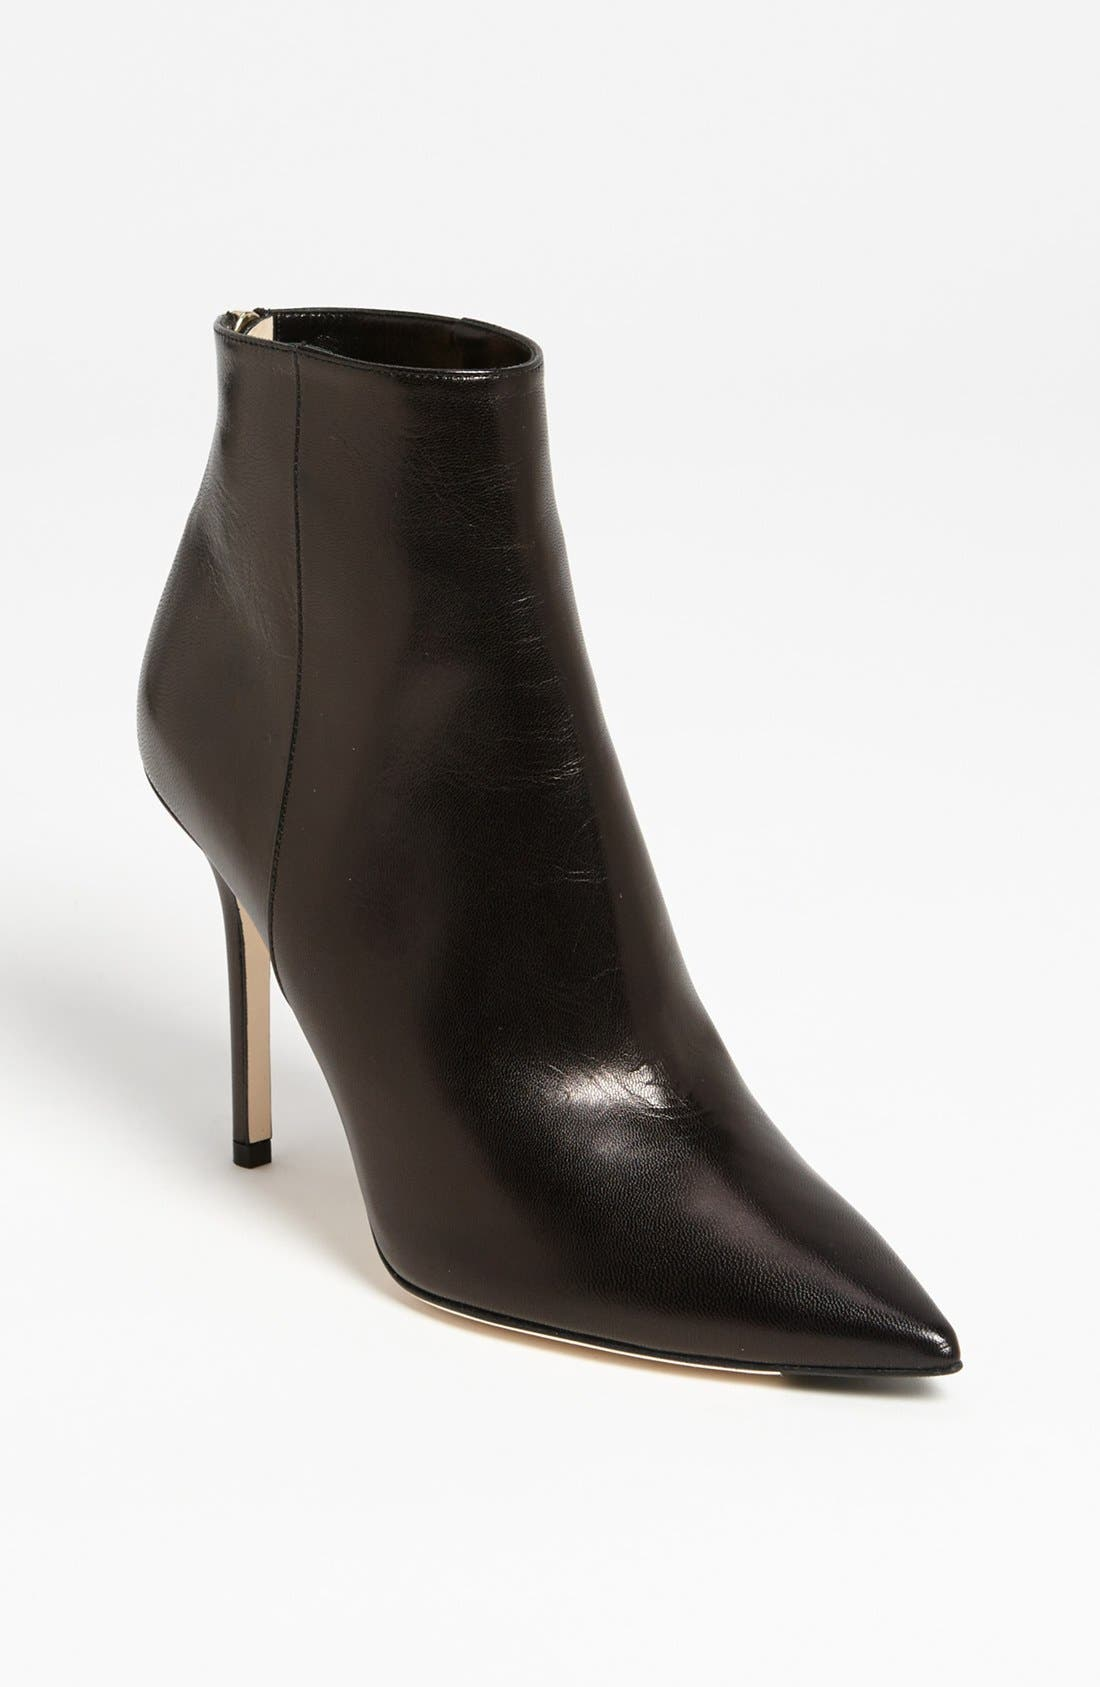 Main Image - Jimmy Choo 'Arena' Bootie